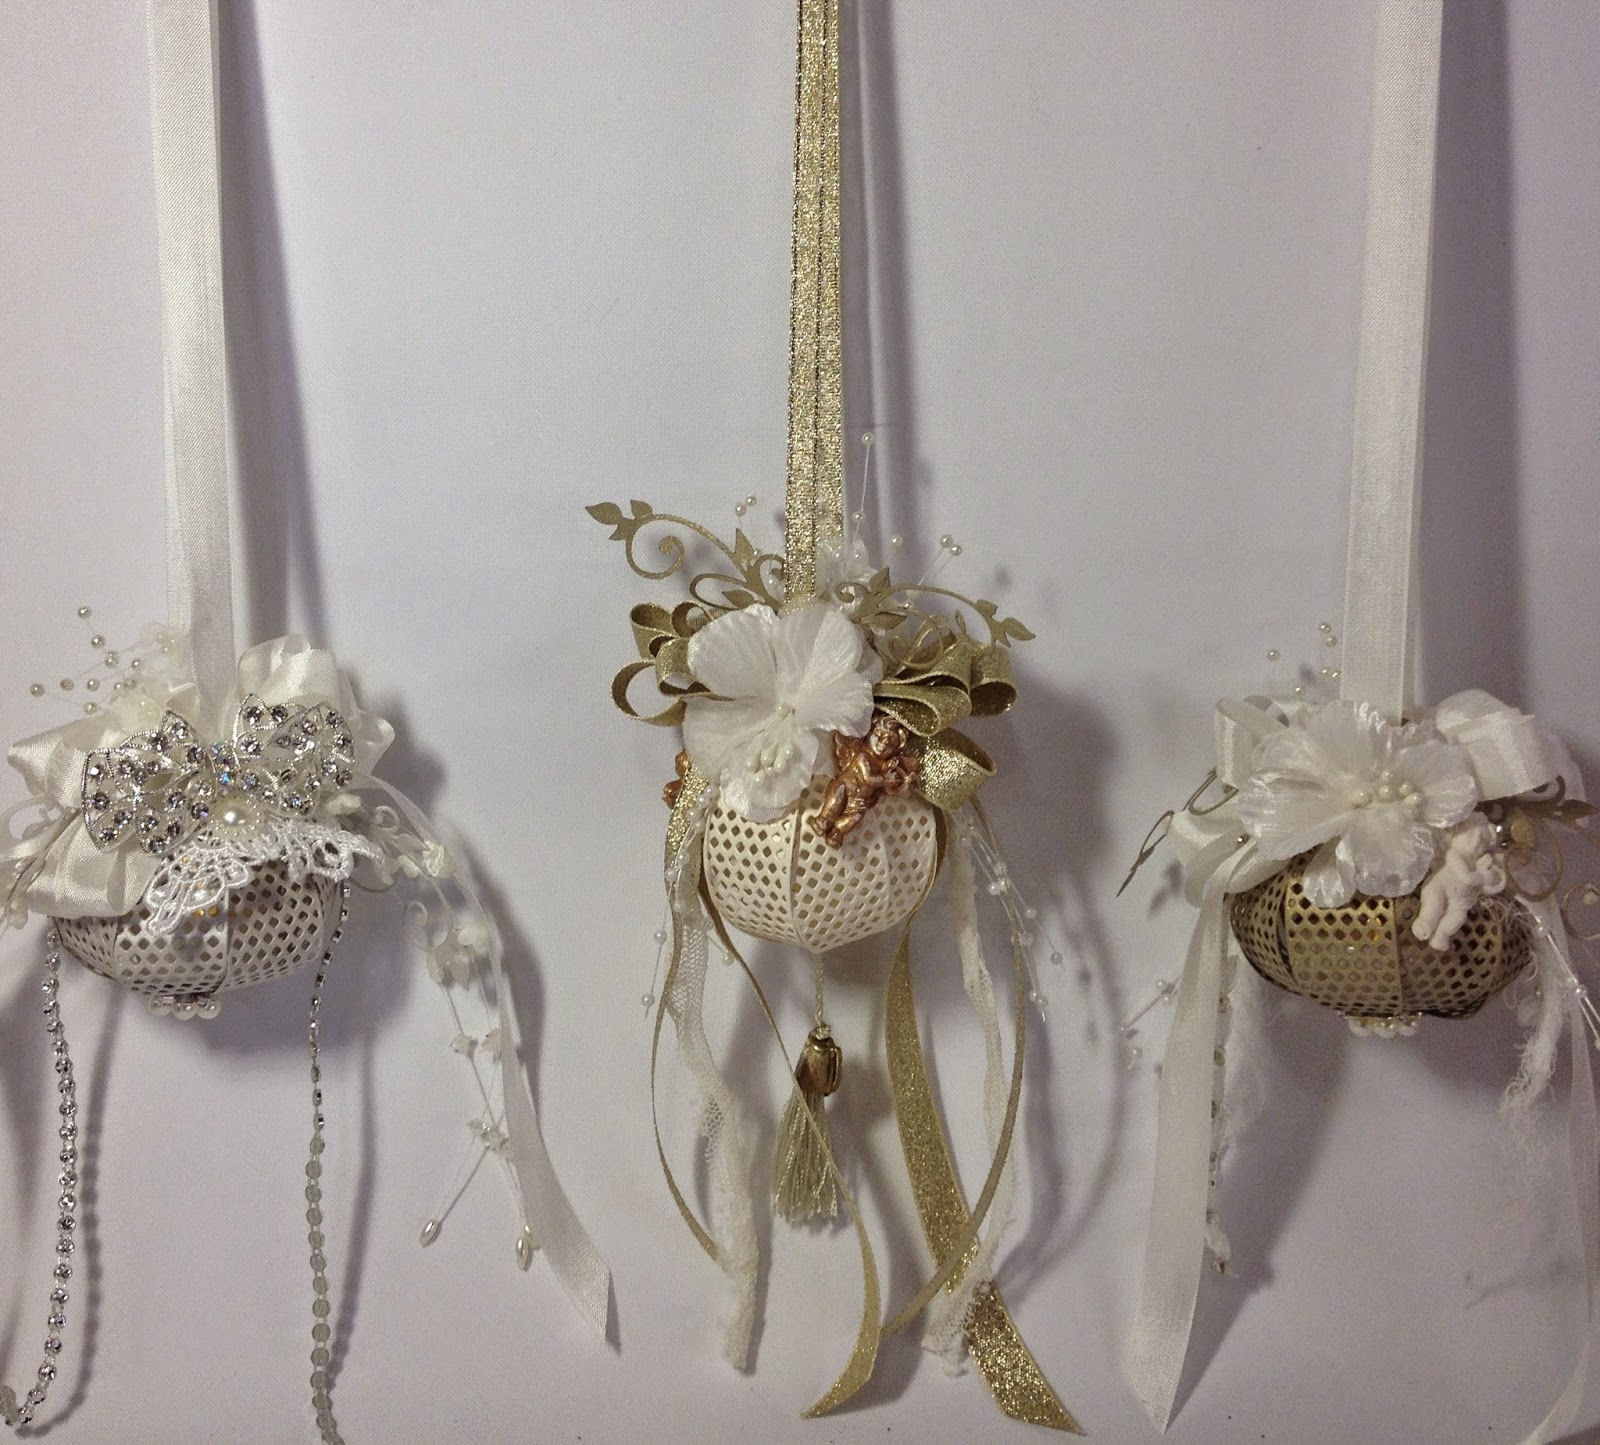 annes papercreations: How to make a Christmas lightning ...